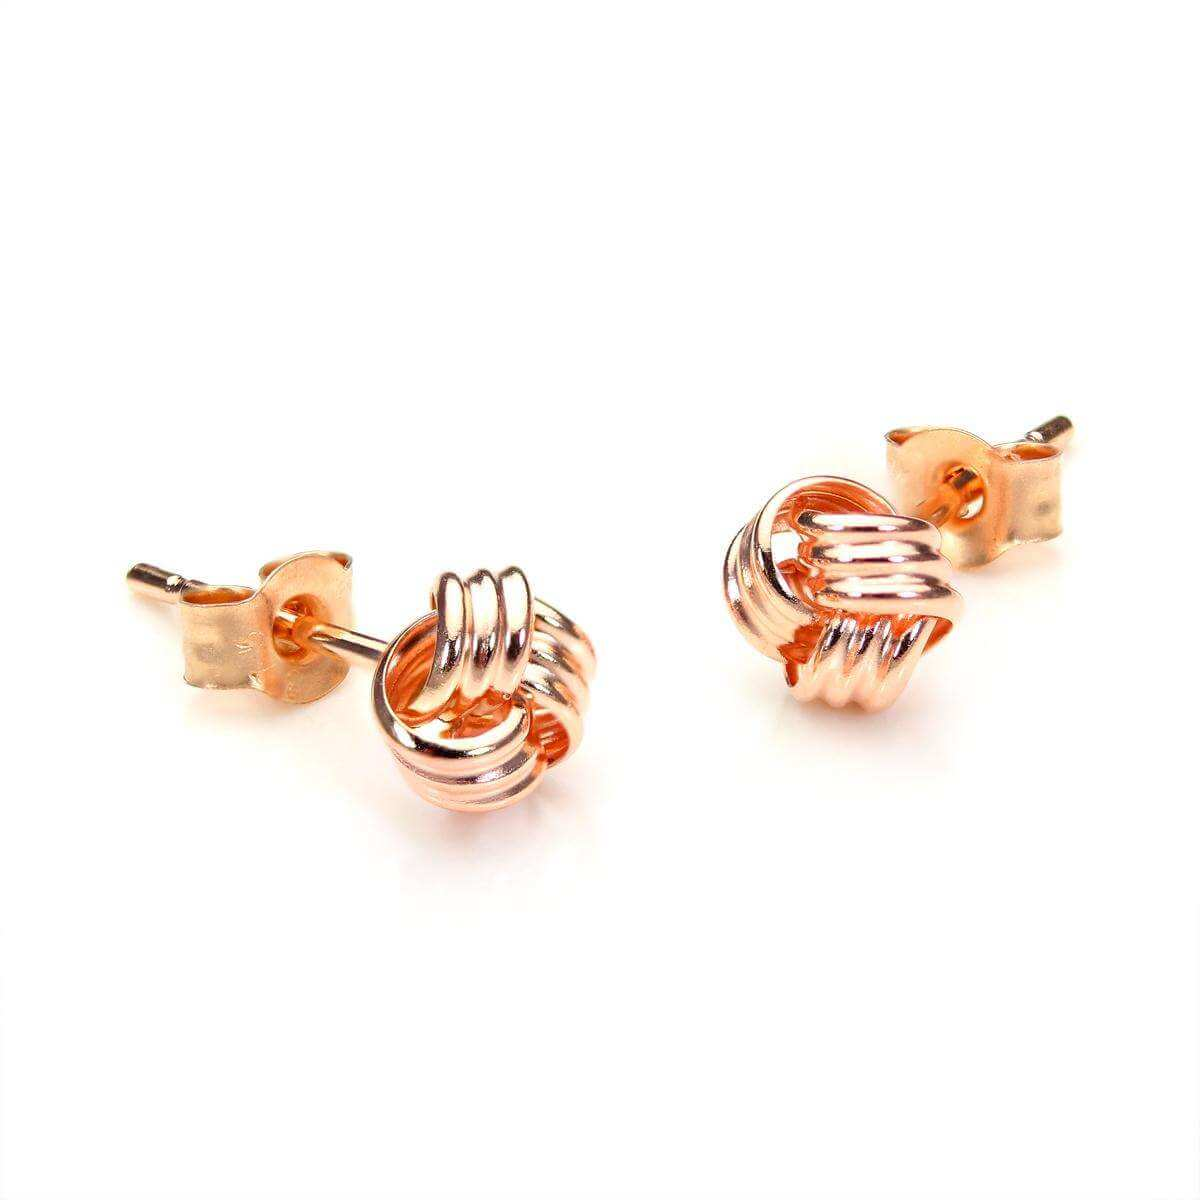 9ct Rose Gold 5mm Knot Stud Earrings